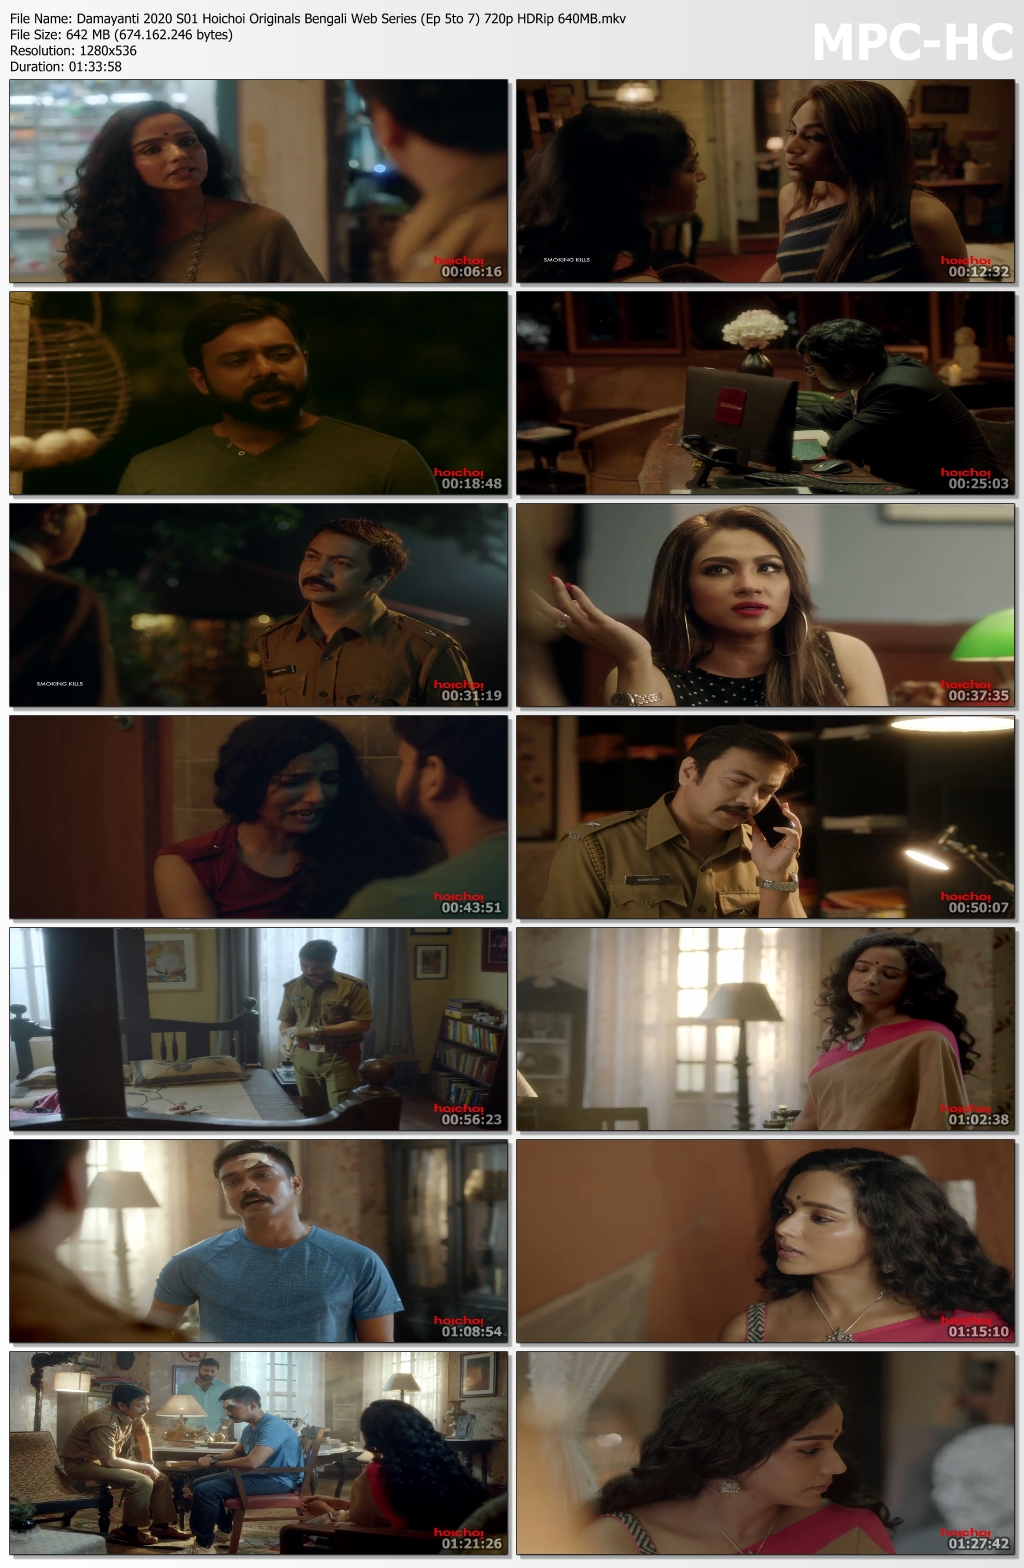 Damayanti-2020-S01-Hoichoi-Originals-Bengali-Web-Series-Ep-5to-7-720p-HDRip-640-MB-mkv-thumbs